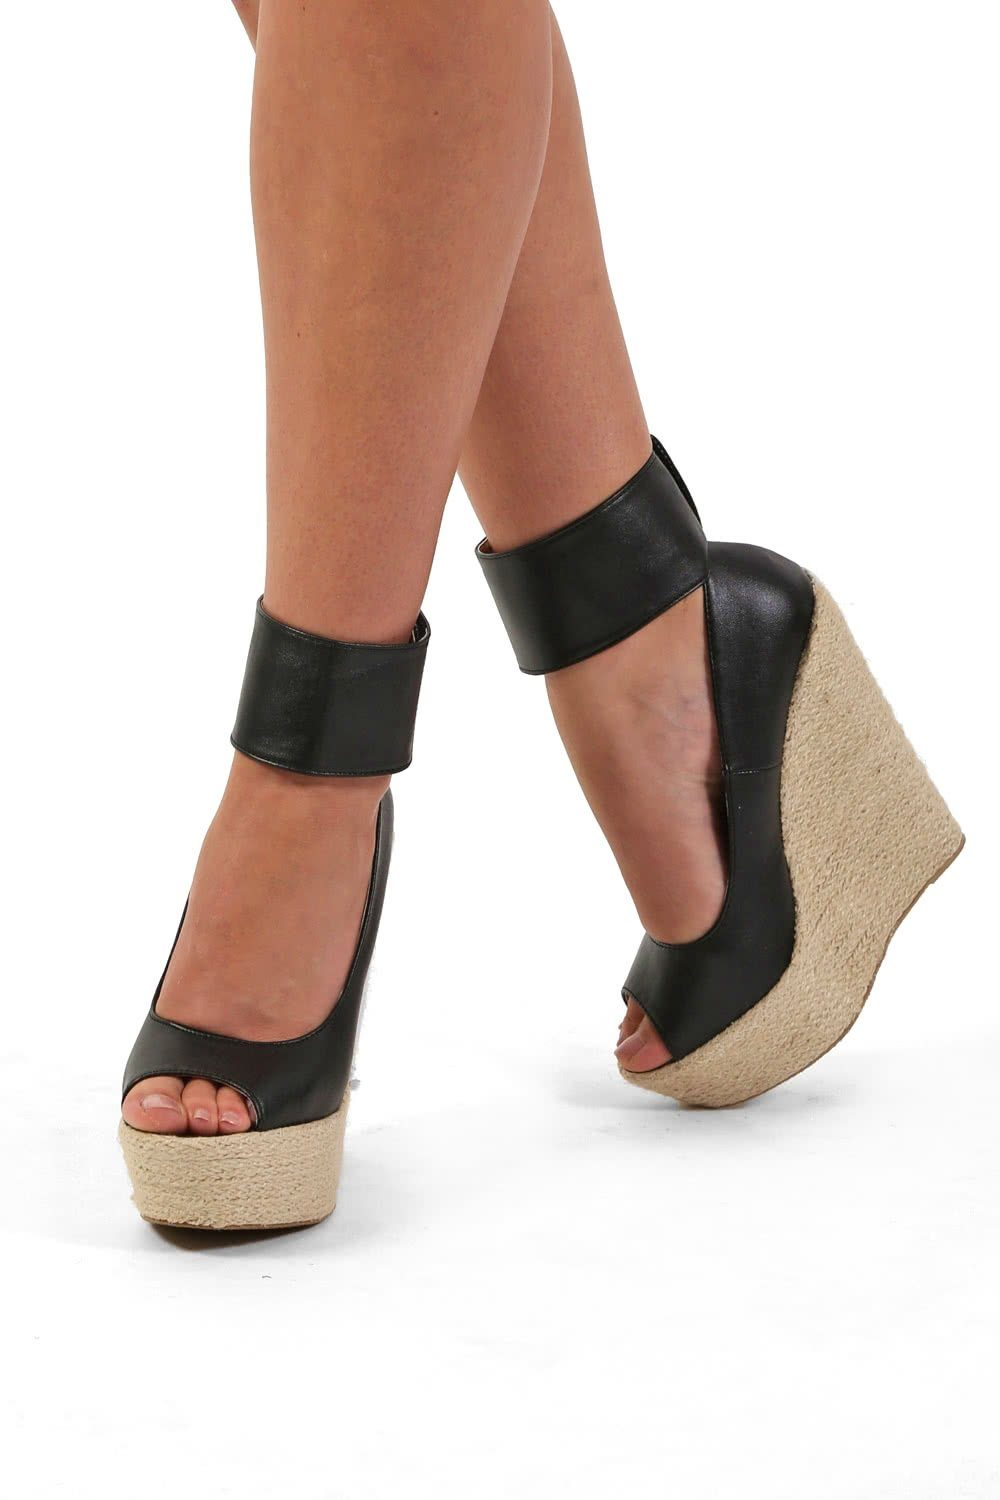 Shoes - Open Toe Wide Ankle Strap Wedge Sandals In Black